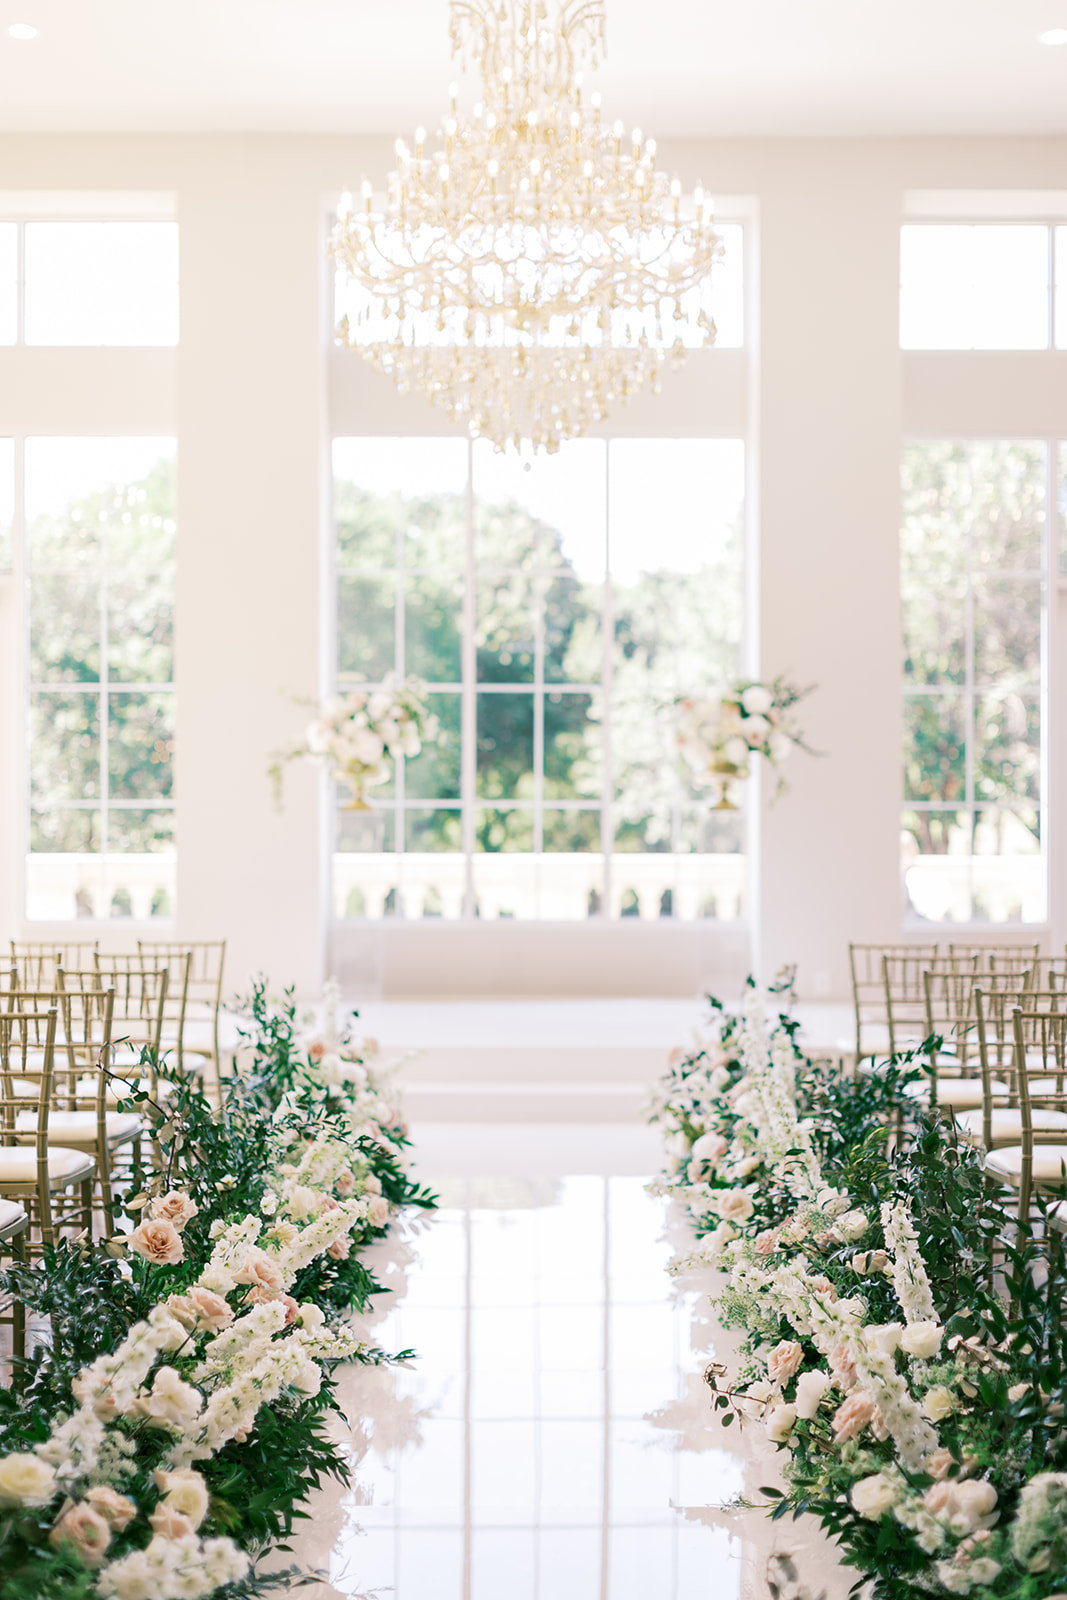 Floral-filled wedding ceremony decor at The Olana, Texas